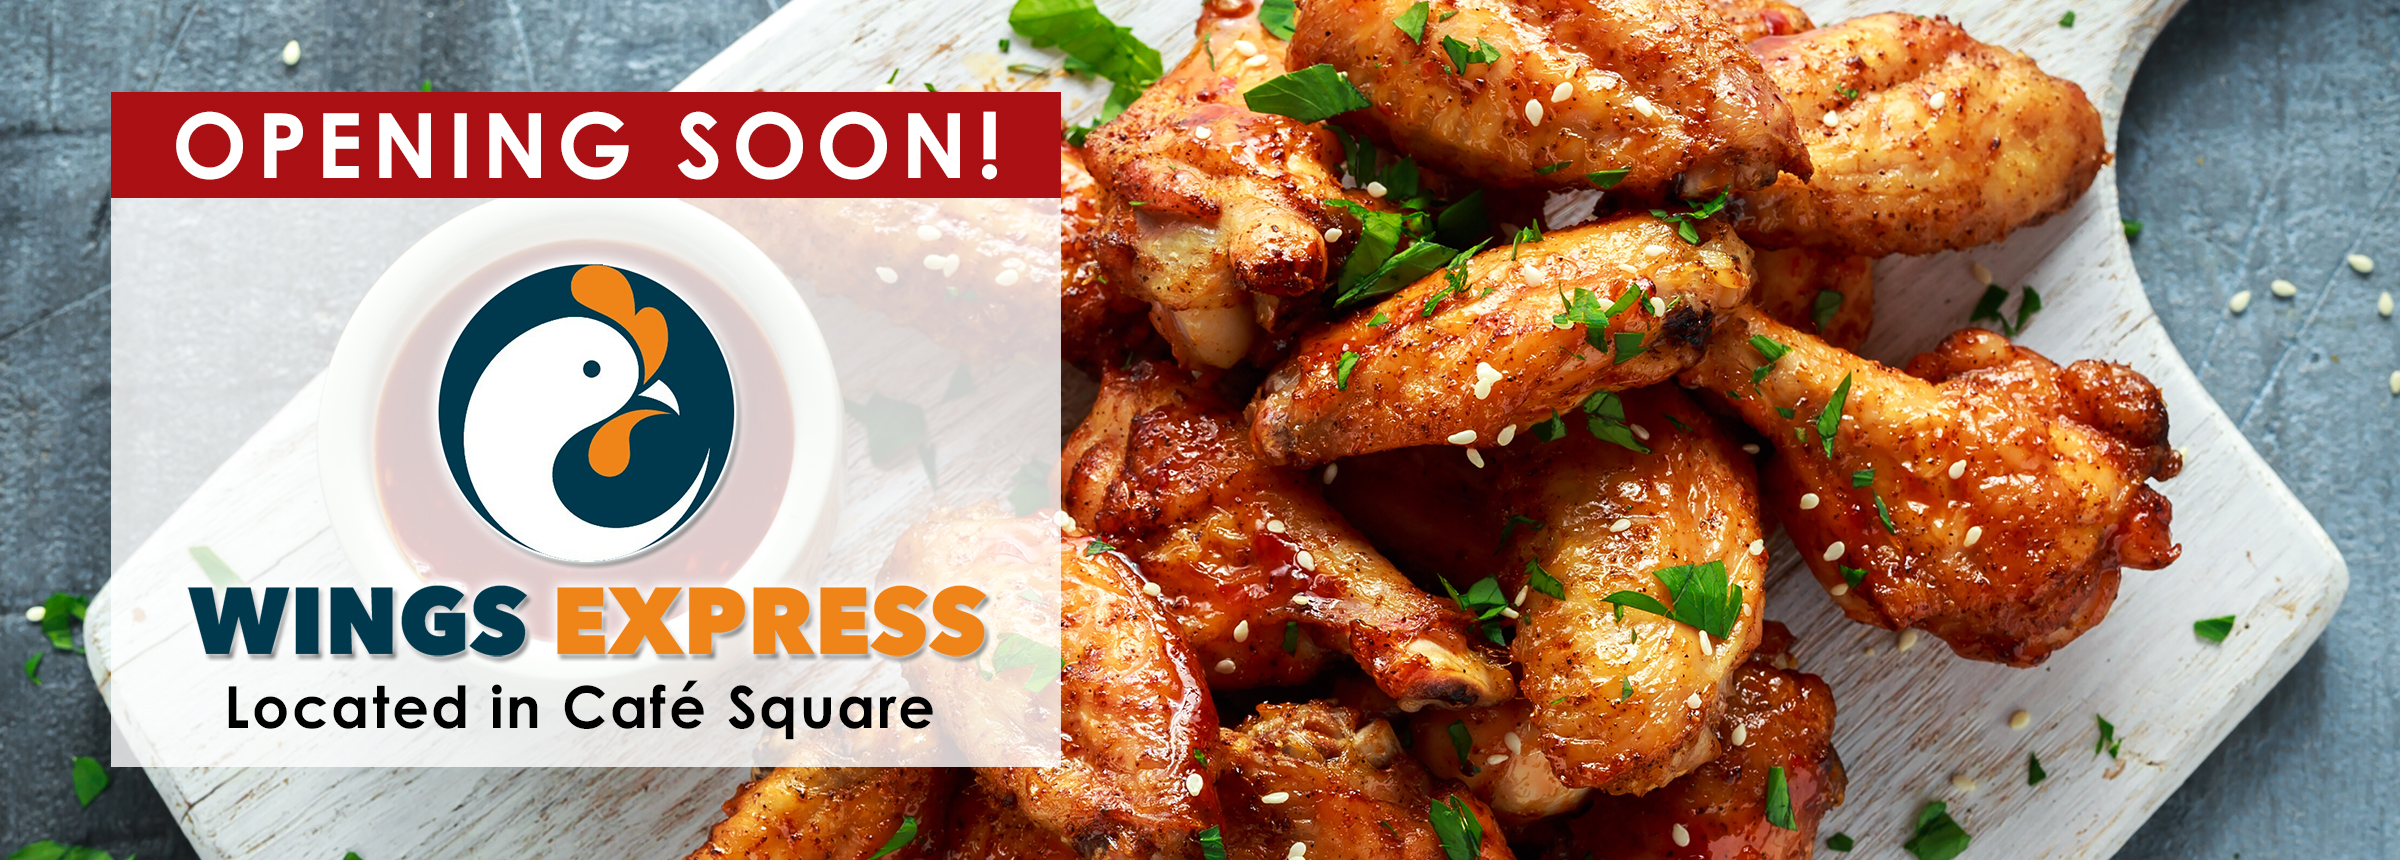 REVISED Wings Express Opening Soon Website Hero Image